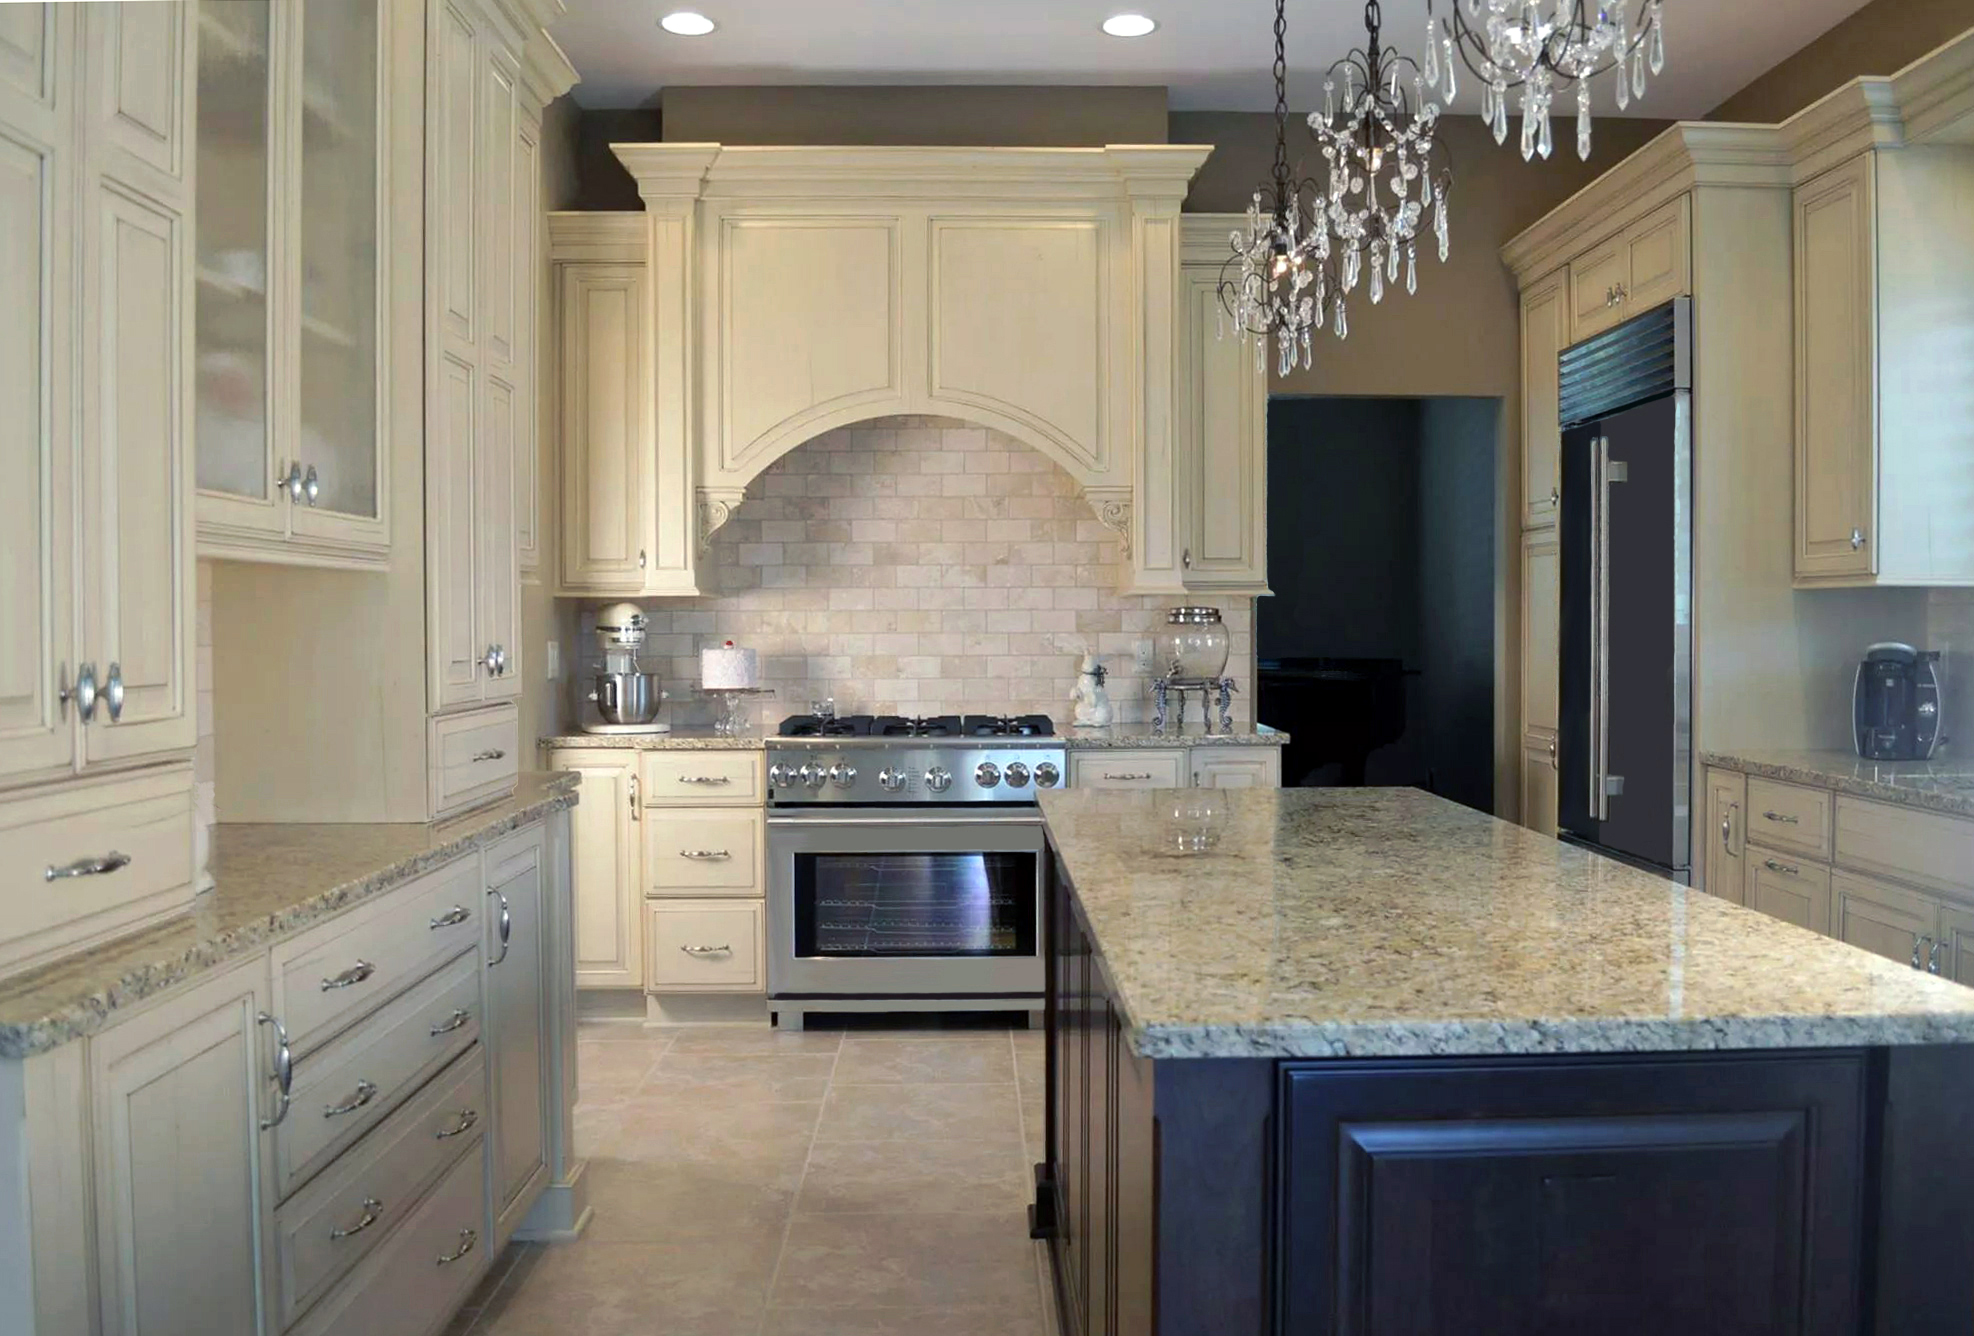 traditional design classic colors and stain ornate molding and details - Transitional Kitchen Design